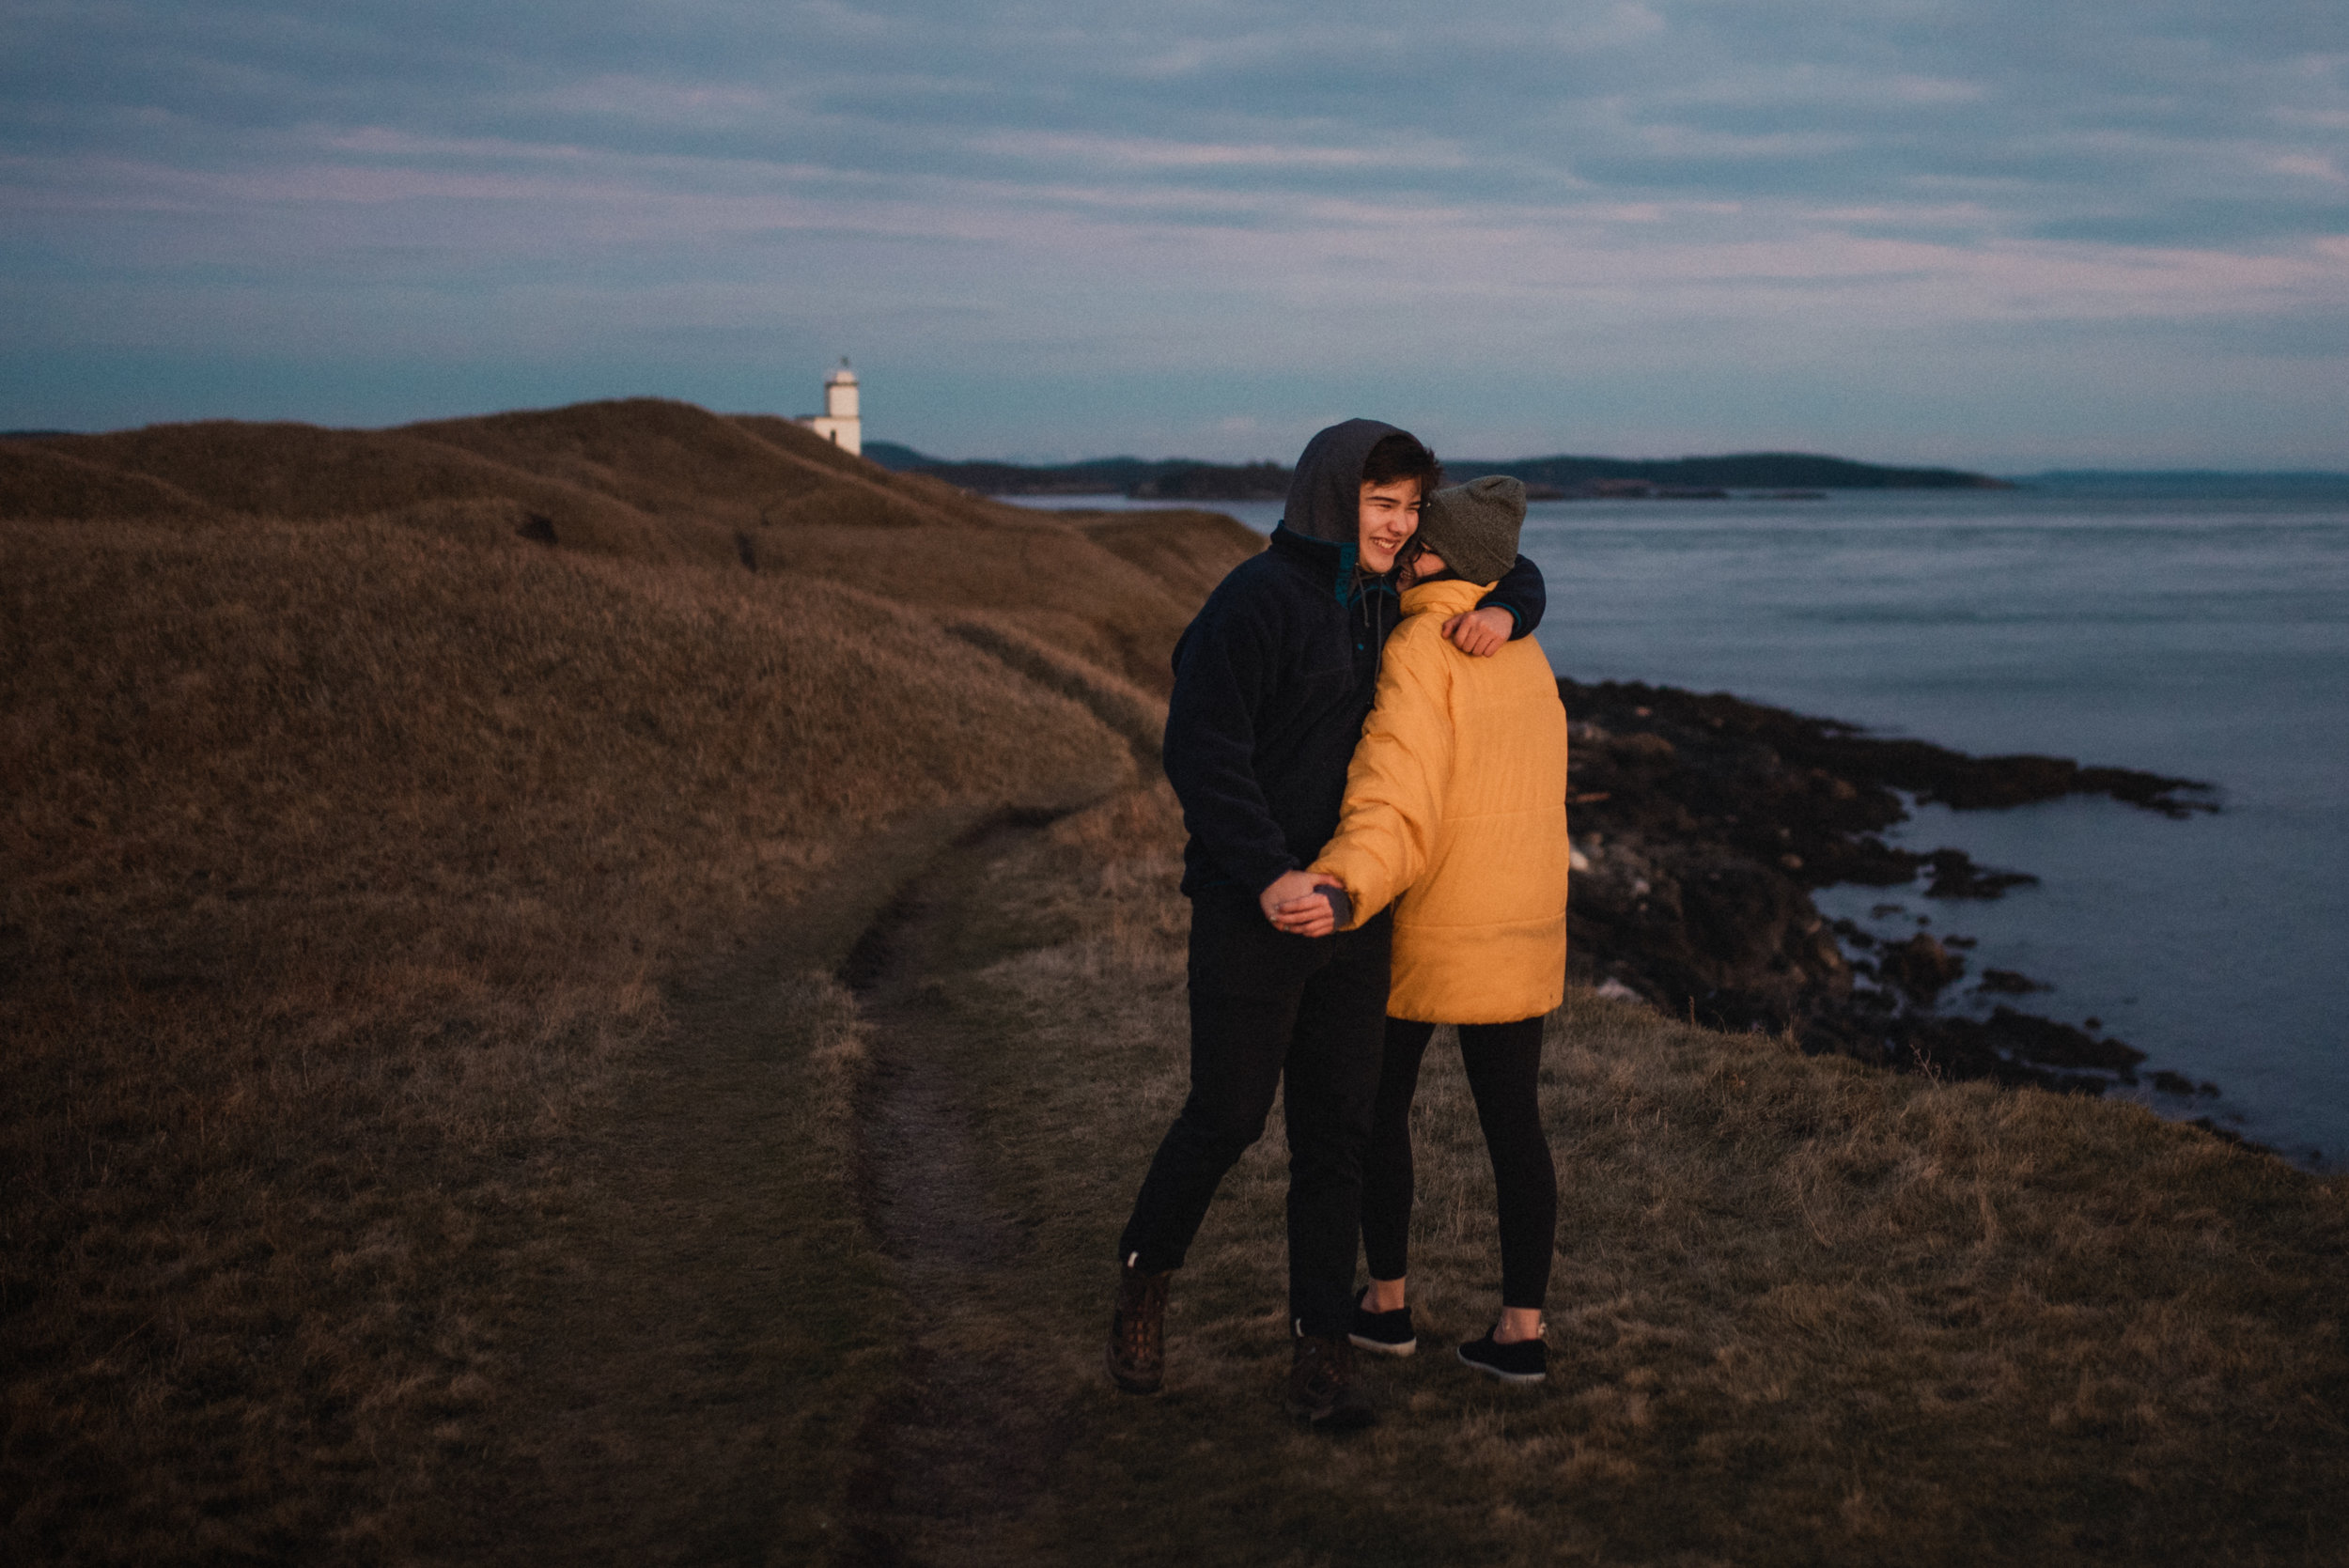 A couple who let me photograph them at Cattle Point